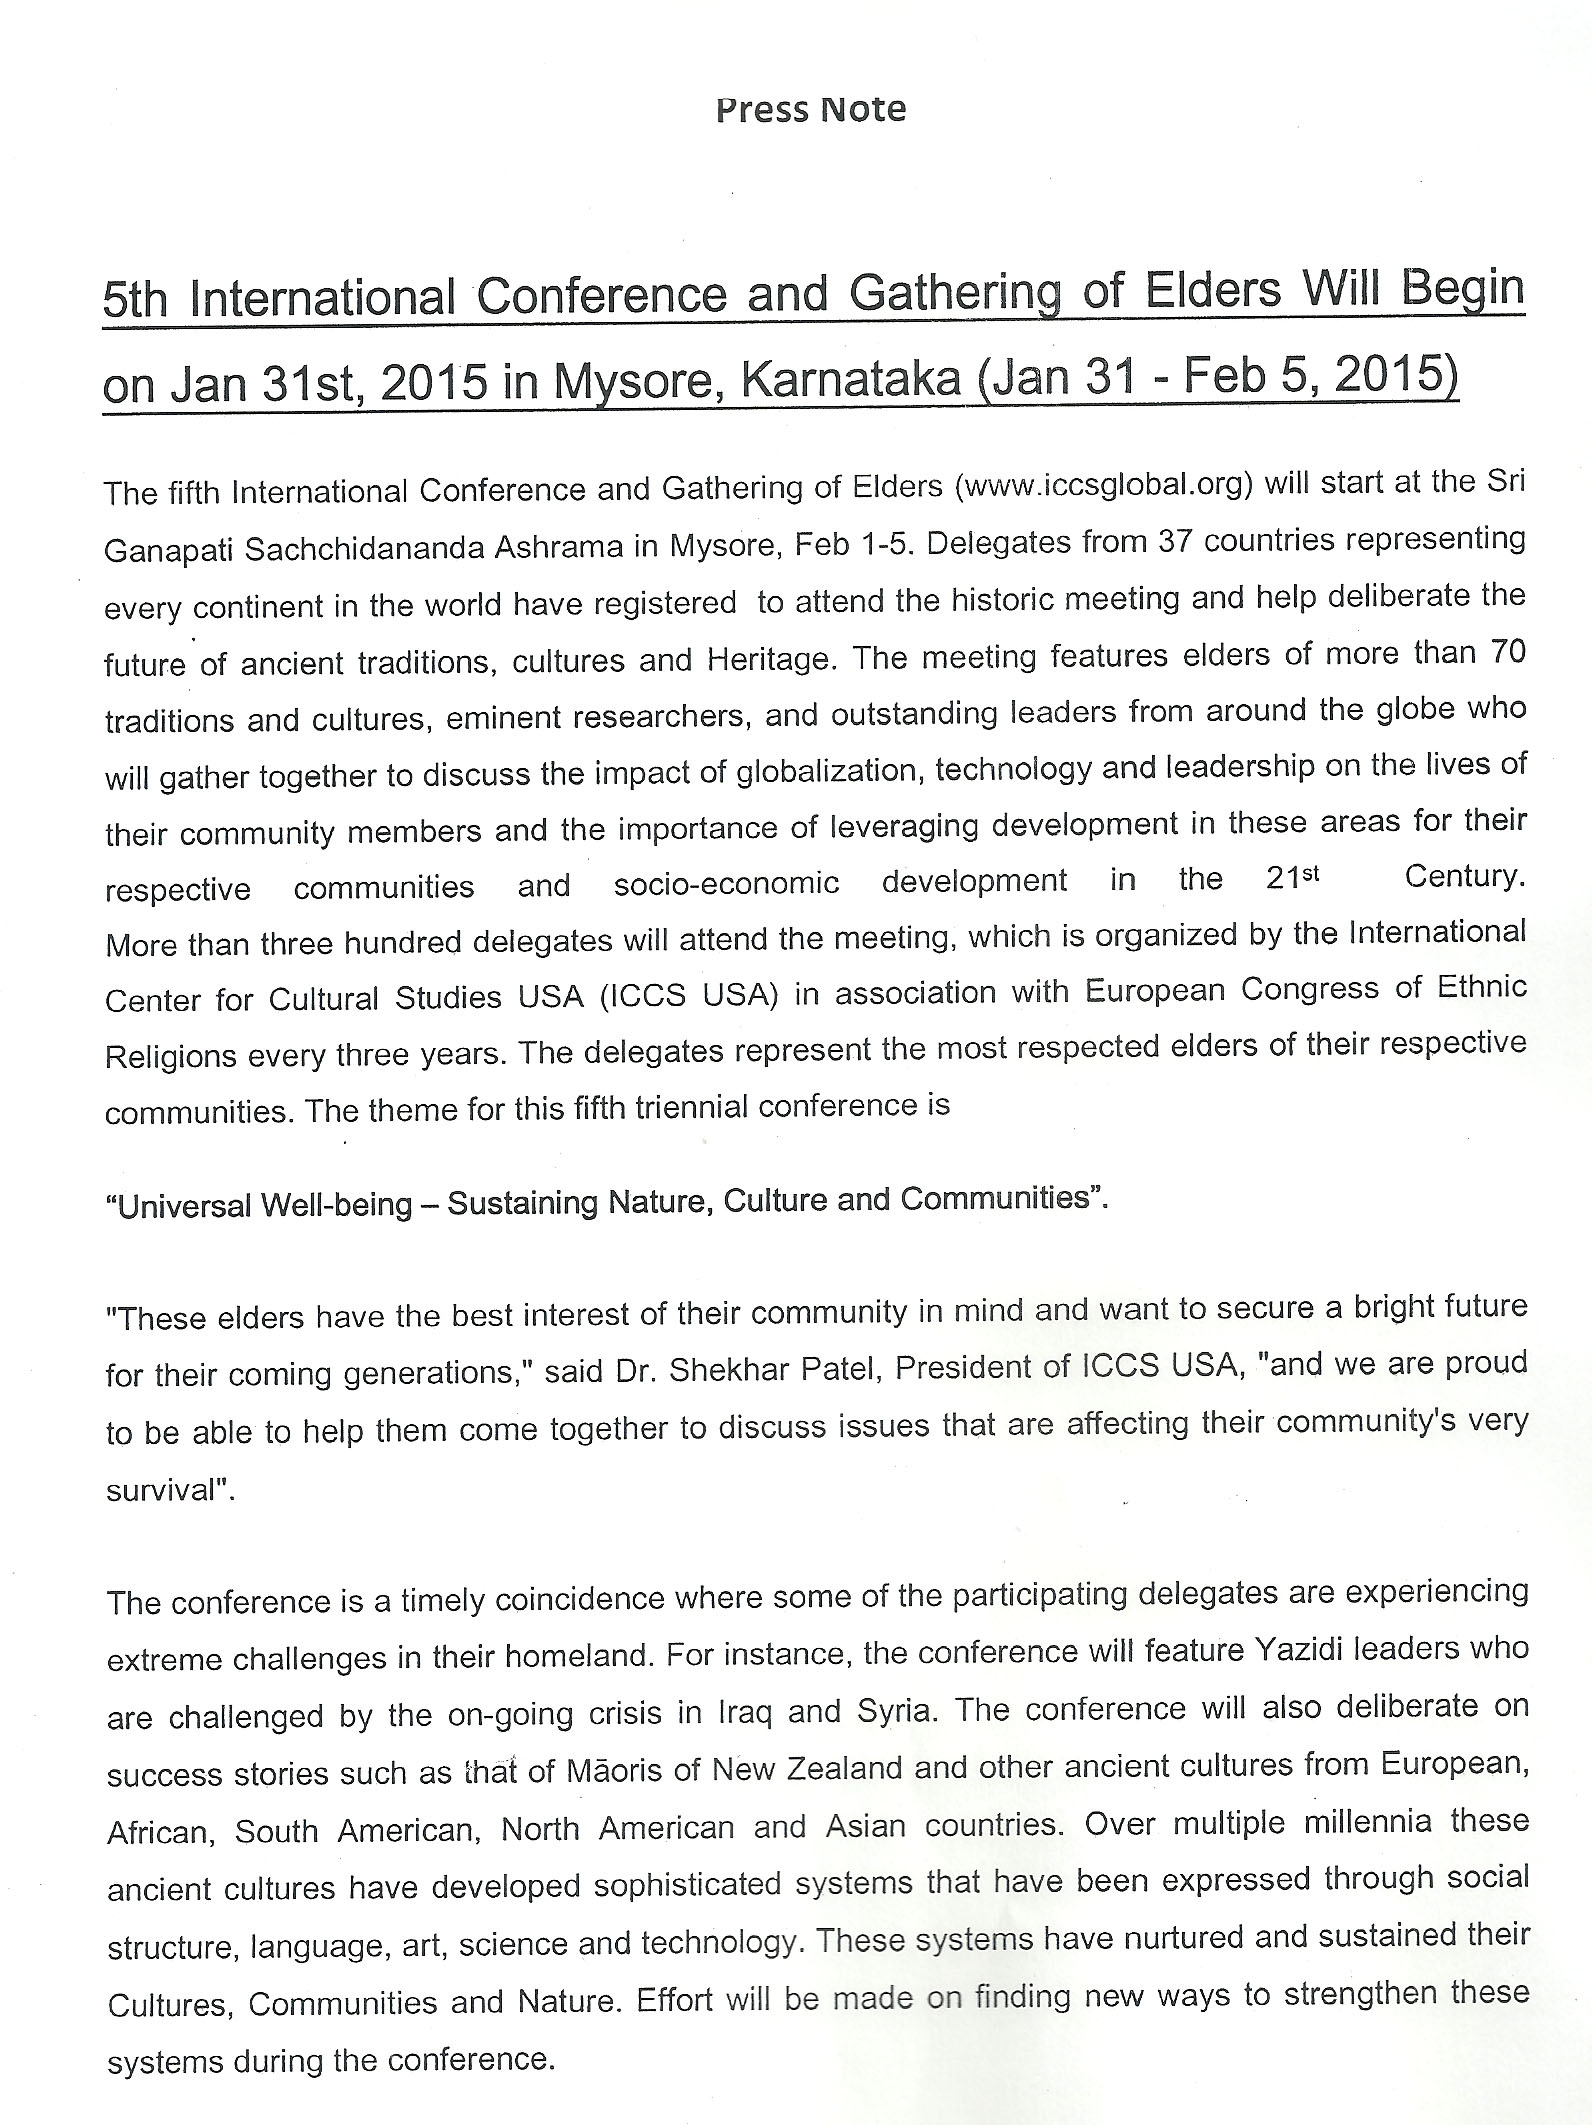 Press Release-INTERNATIONAL CONFERENCE AND ELDERS MEET-MYSURU-2015